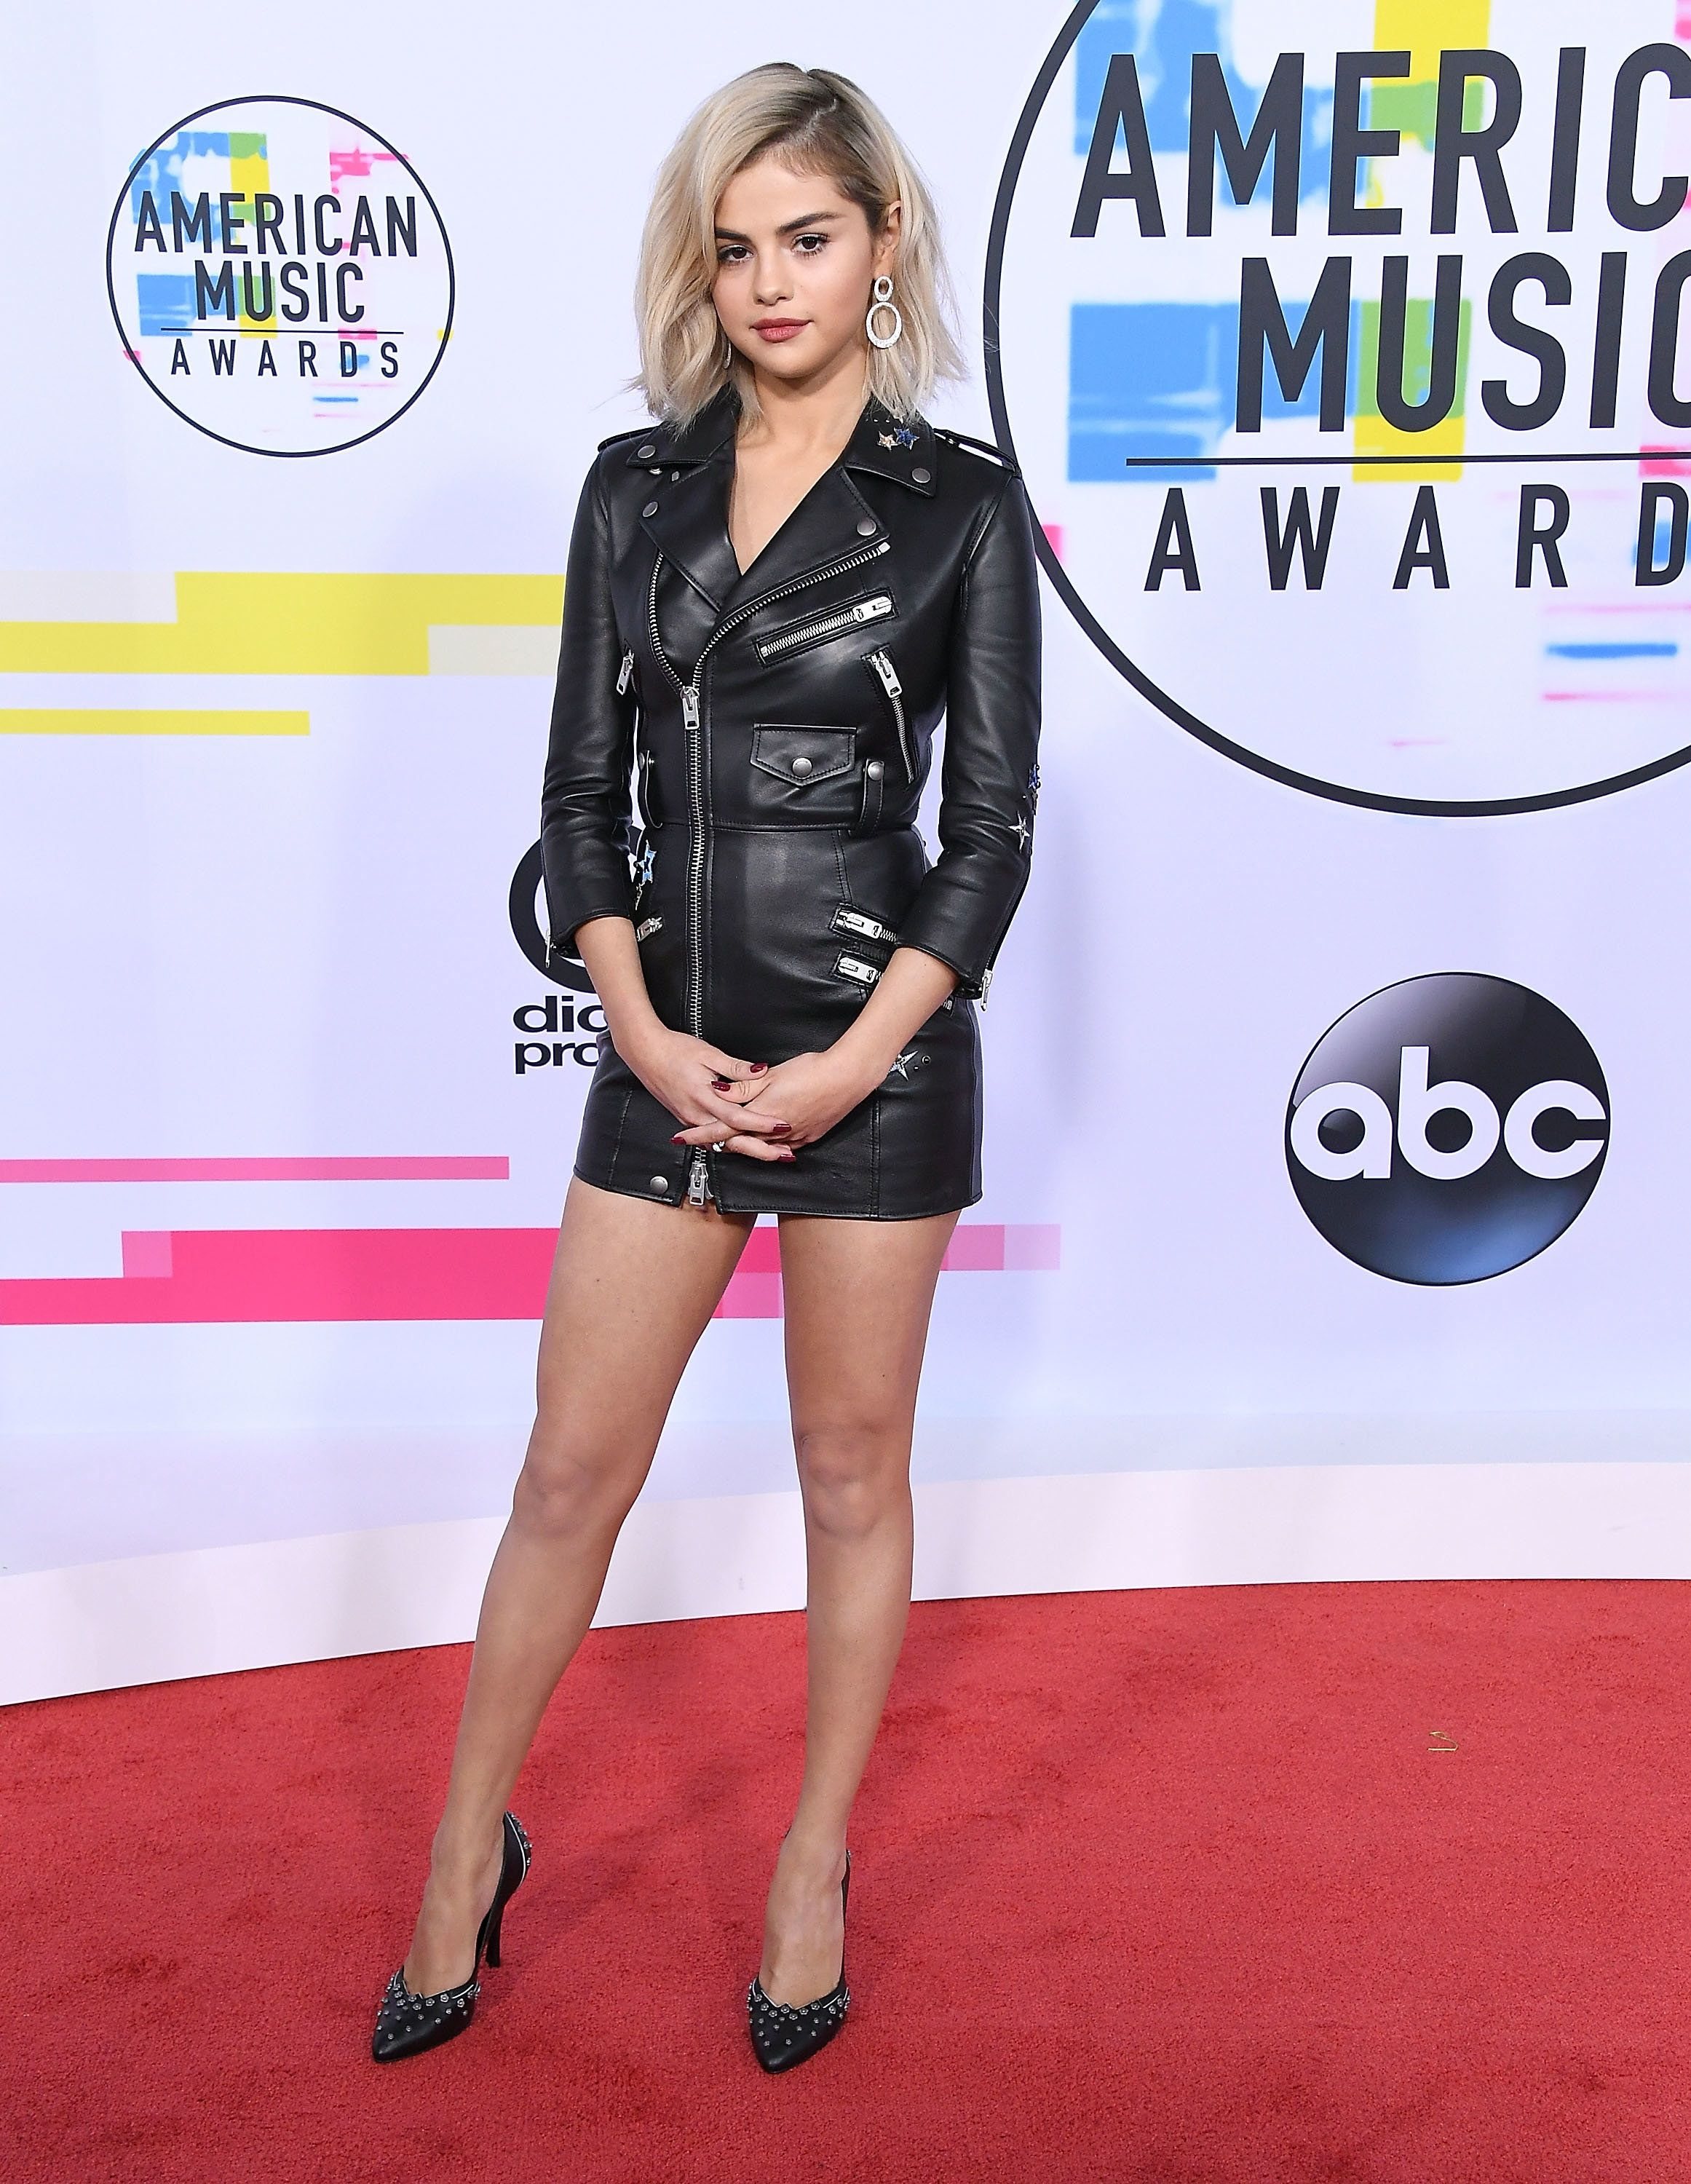 All The Looks Worth Seeing From The 2017 American Music Awards Red Carpet